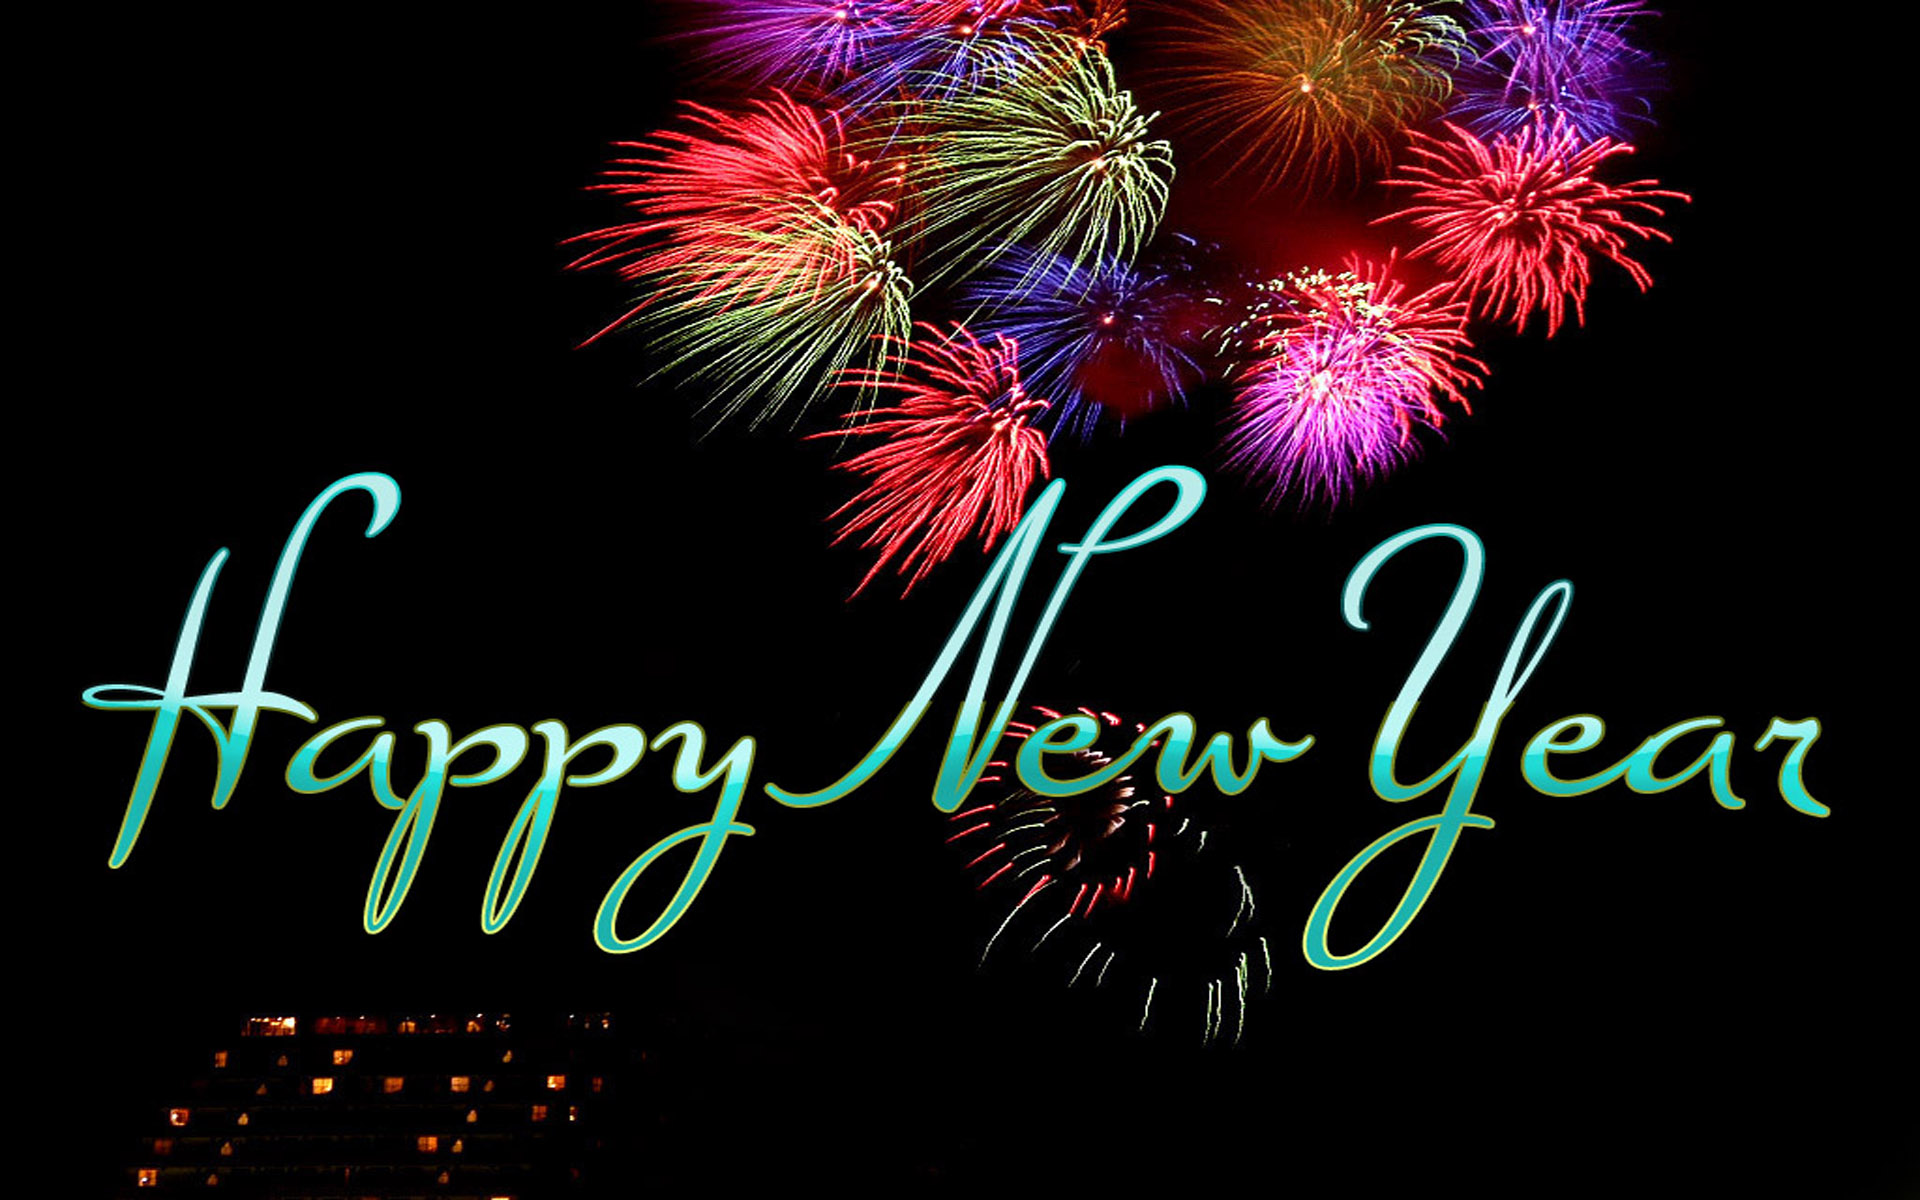 happy new year images wallpapers